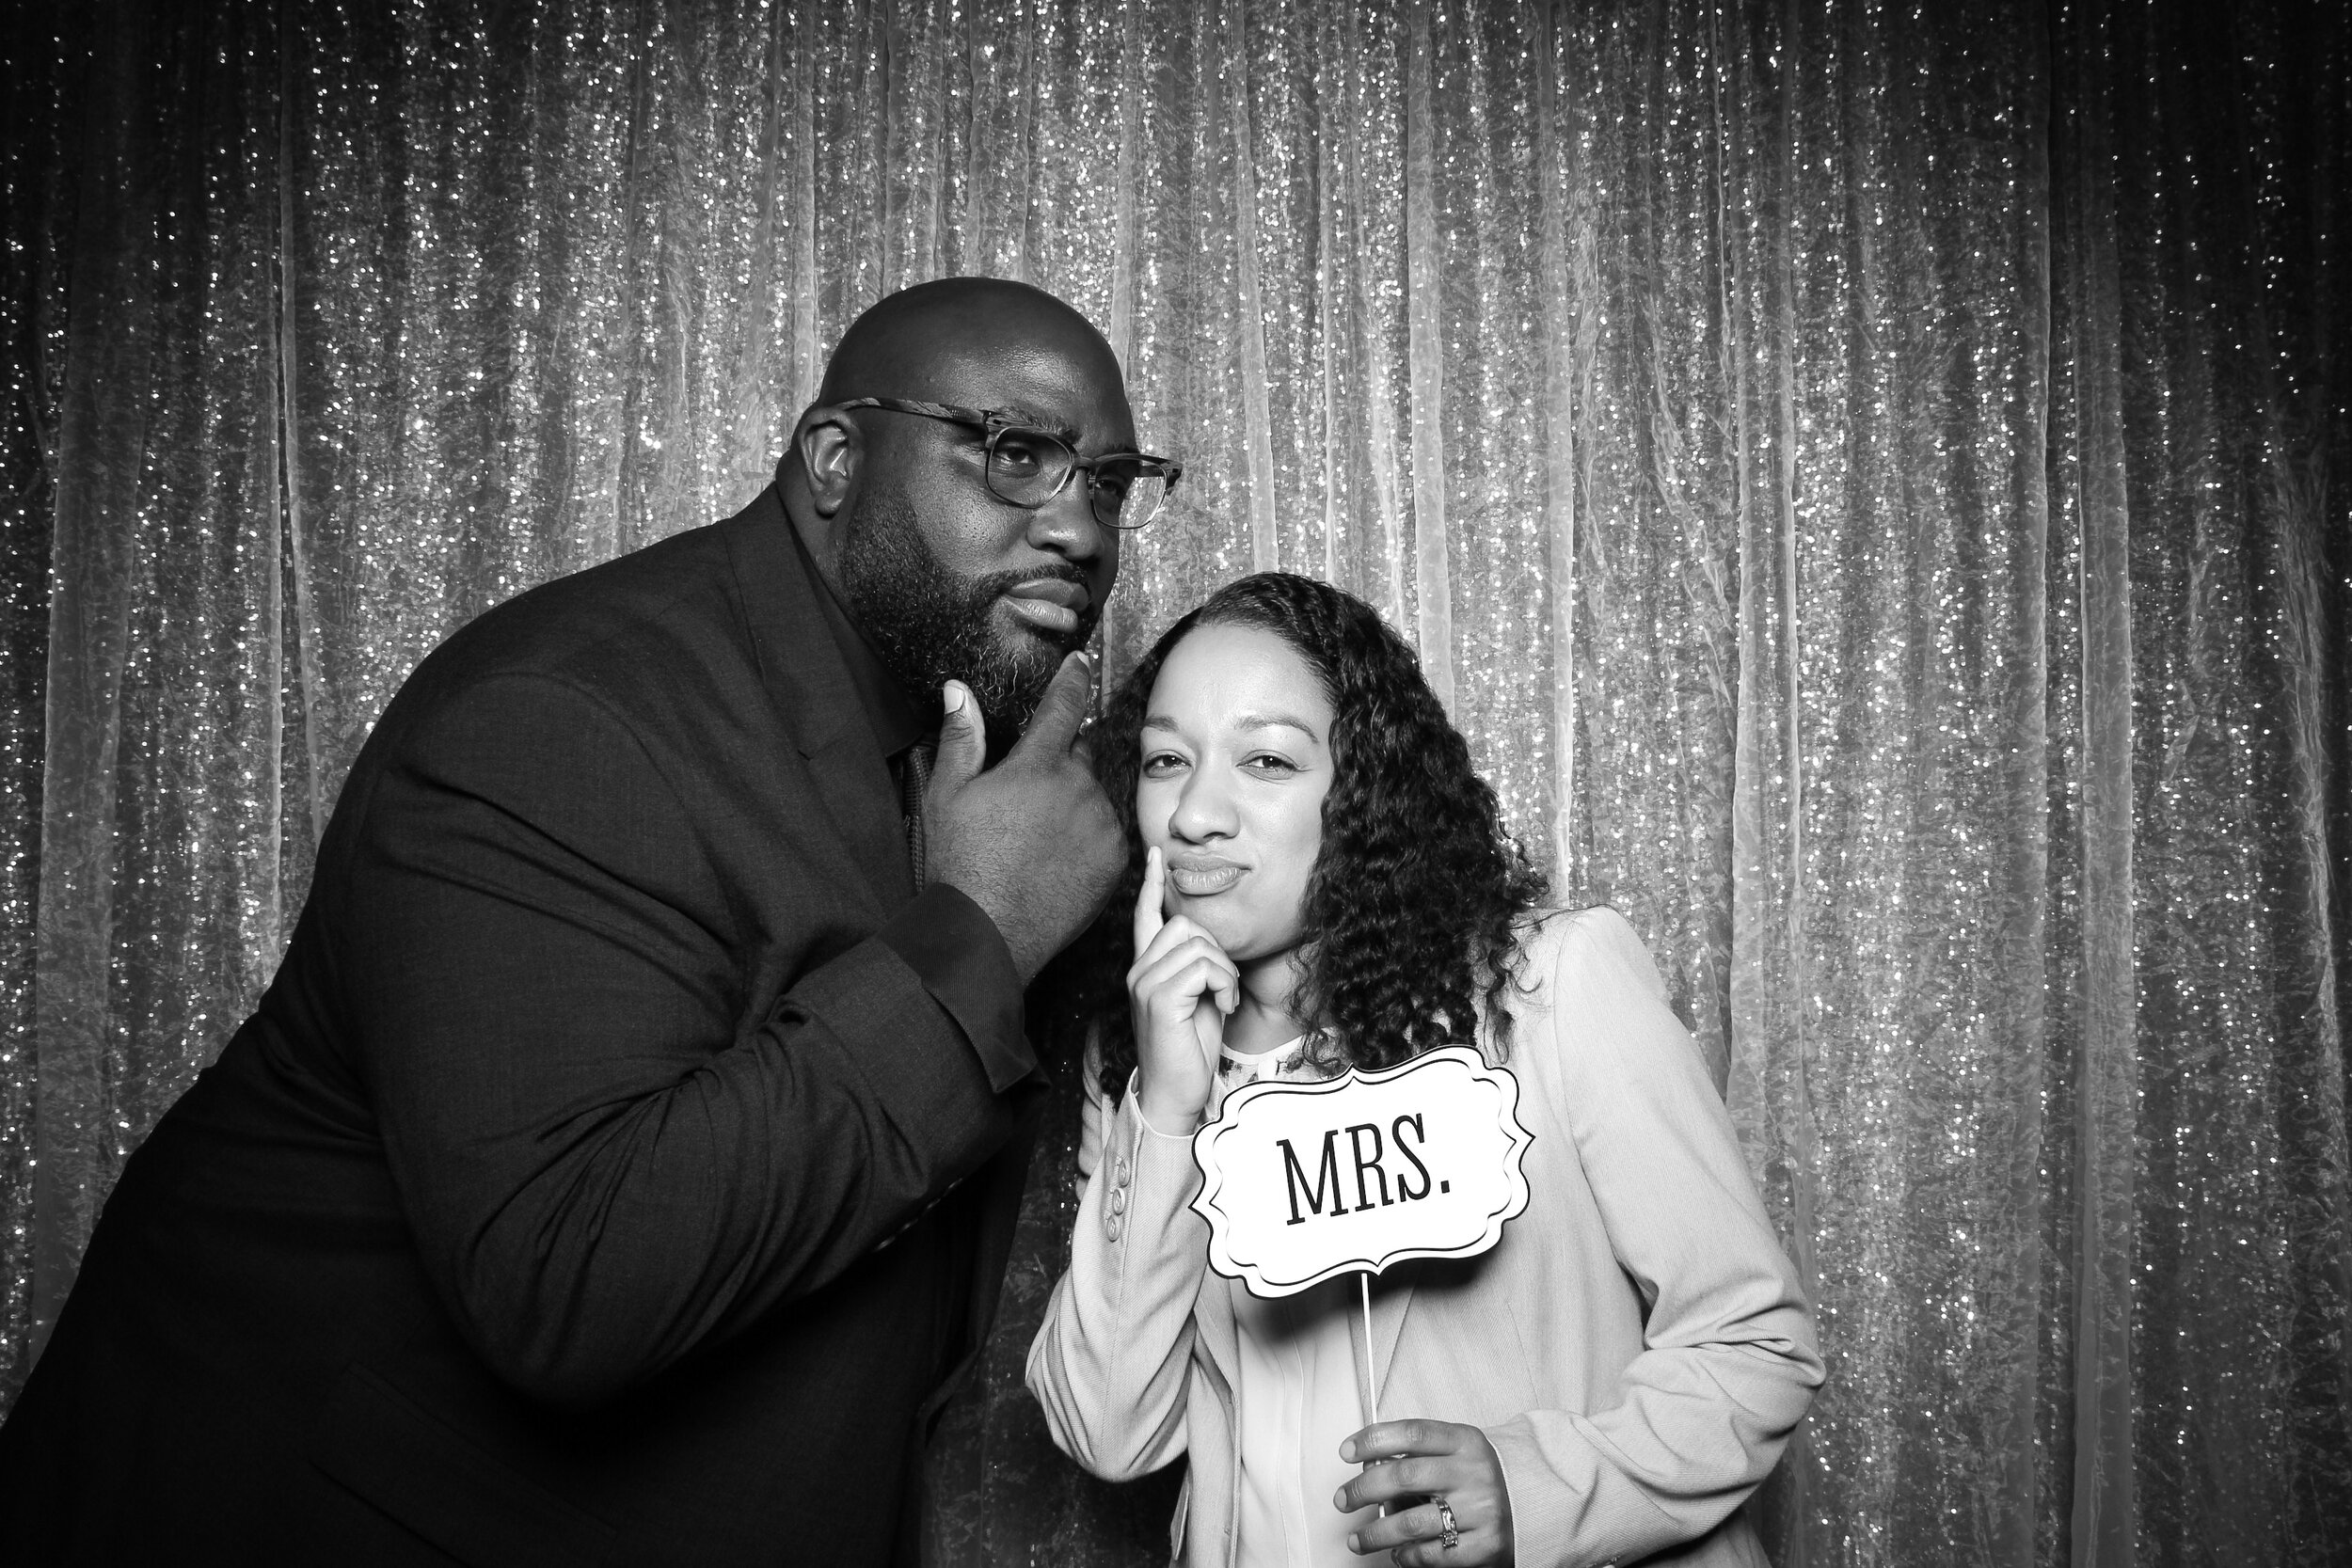 Ravisloe_Country_Club_Wedding_Photo_Booth_08.jpg